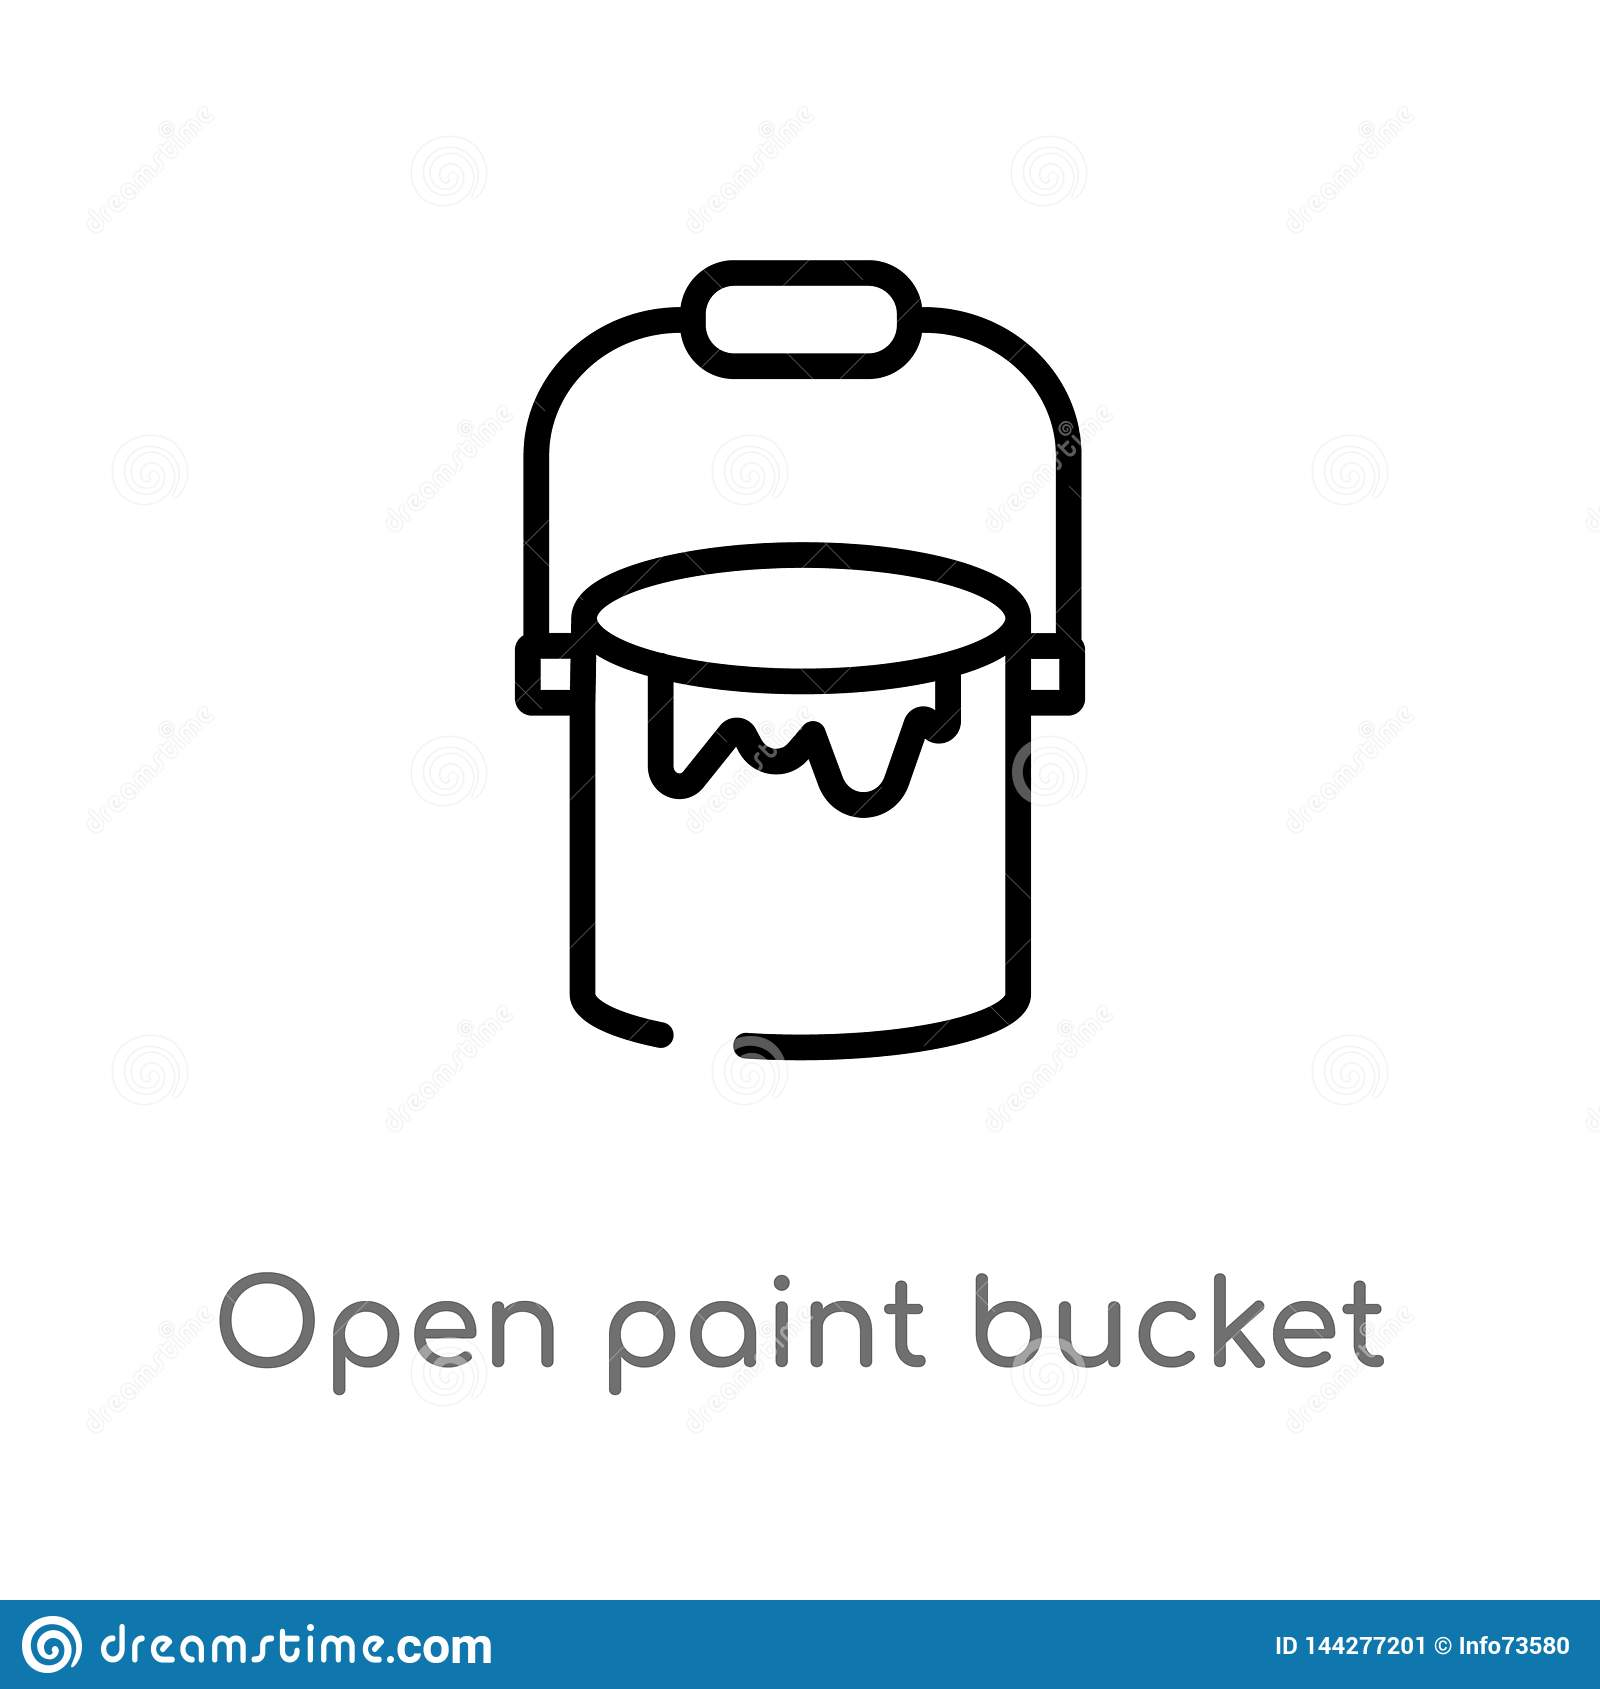 Outline Open Paint Bucket Vector Icon Isolated Black Simple Line Element Illustration From Tools Concept Editable Vector Stroke Stock Vector Illustration Of Logo Work 144277201